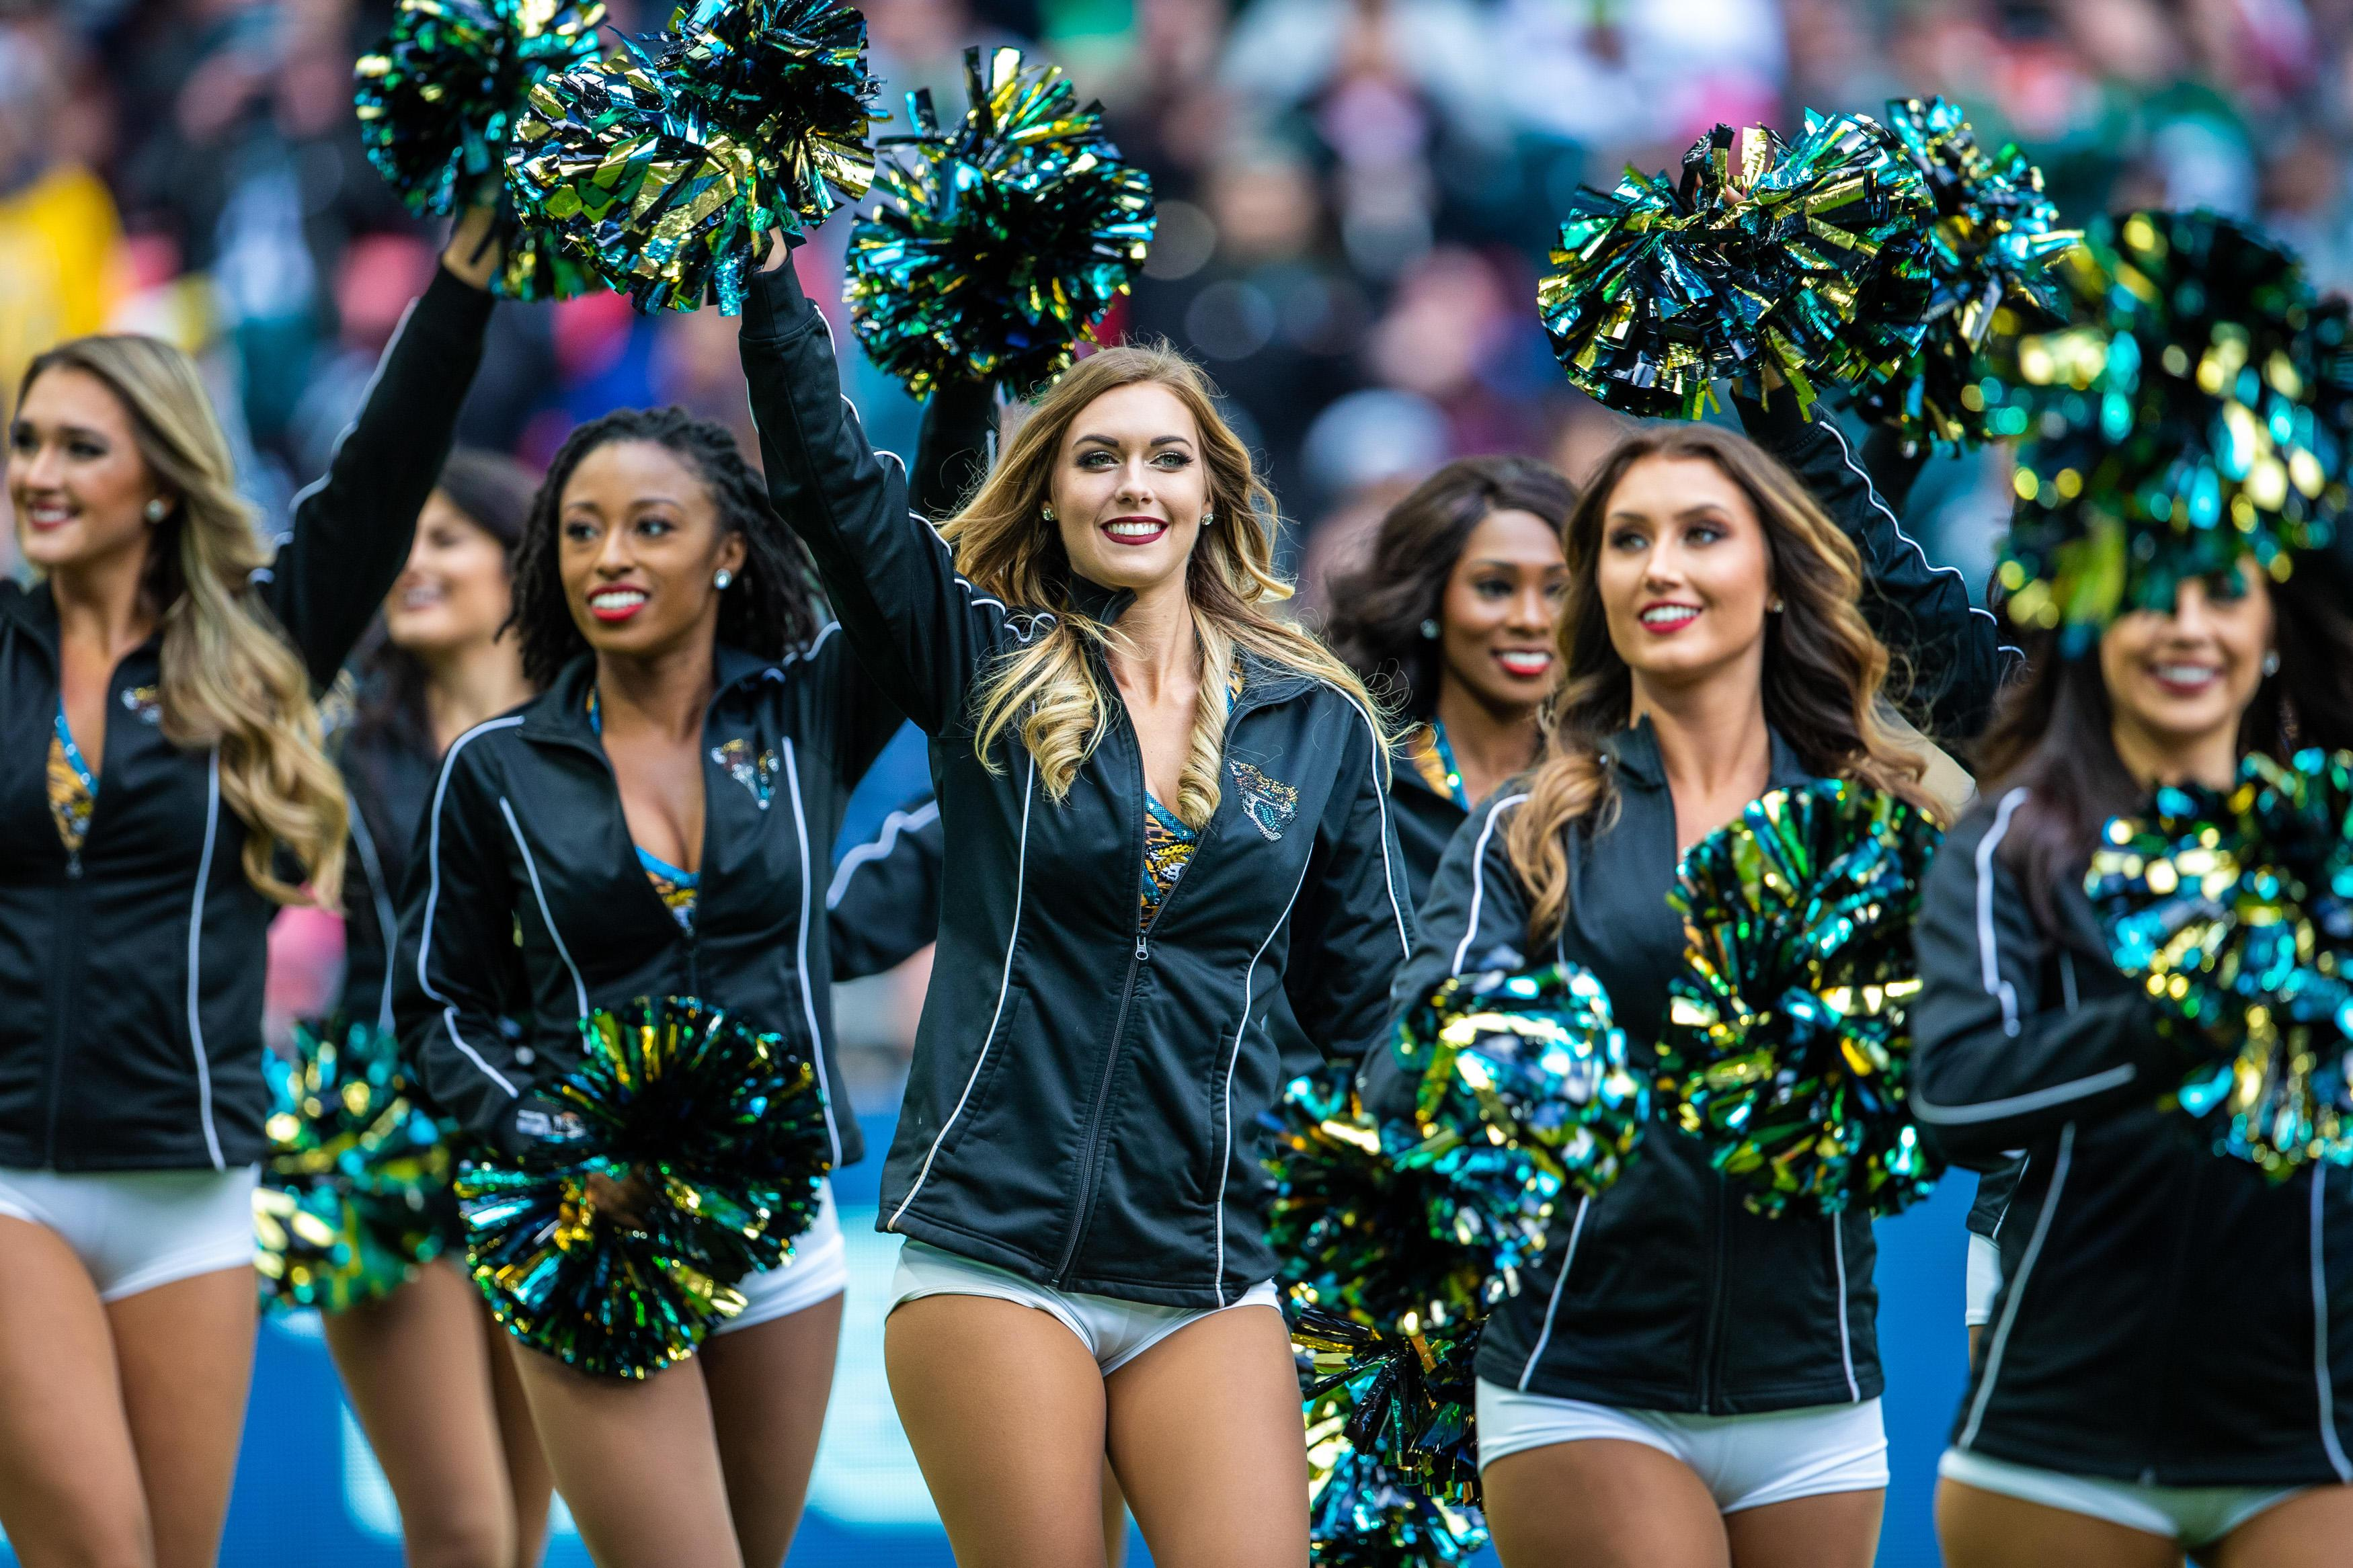 The NFL game in London once again proved to be a raging success